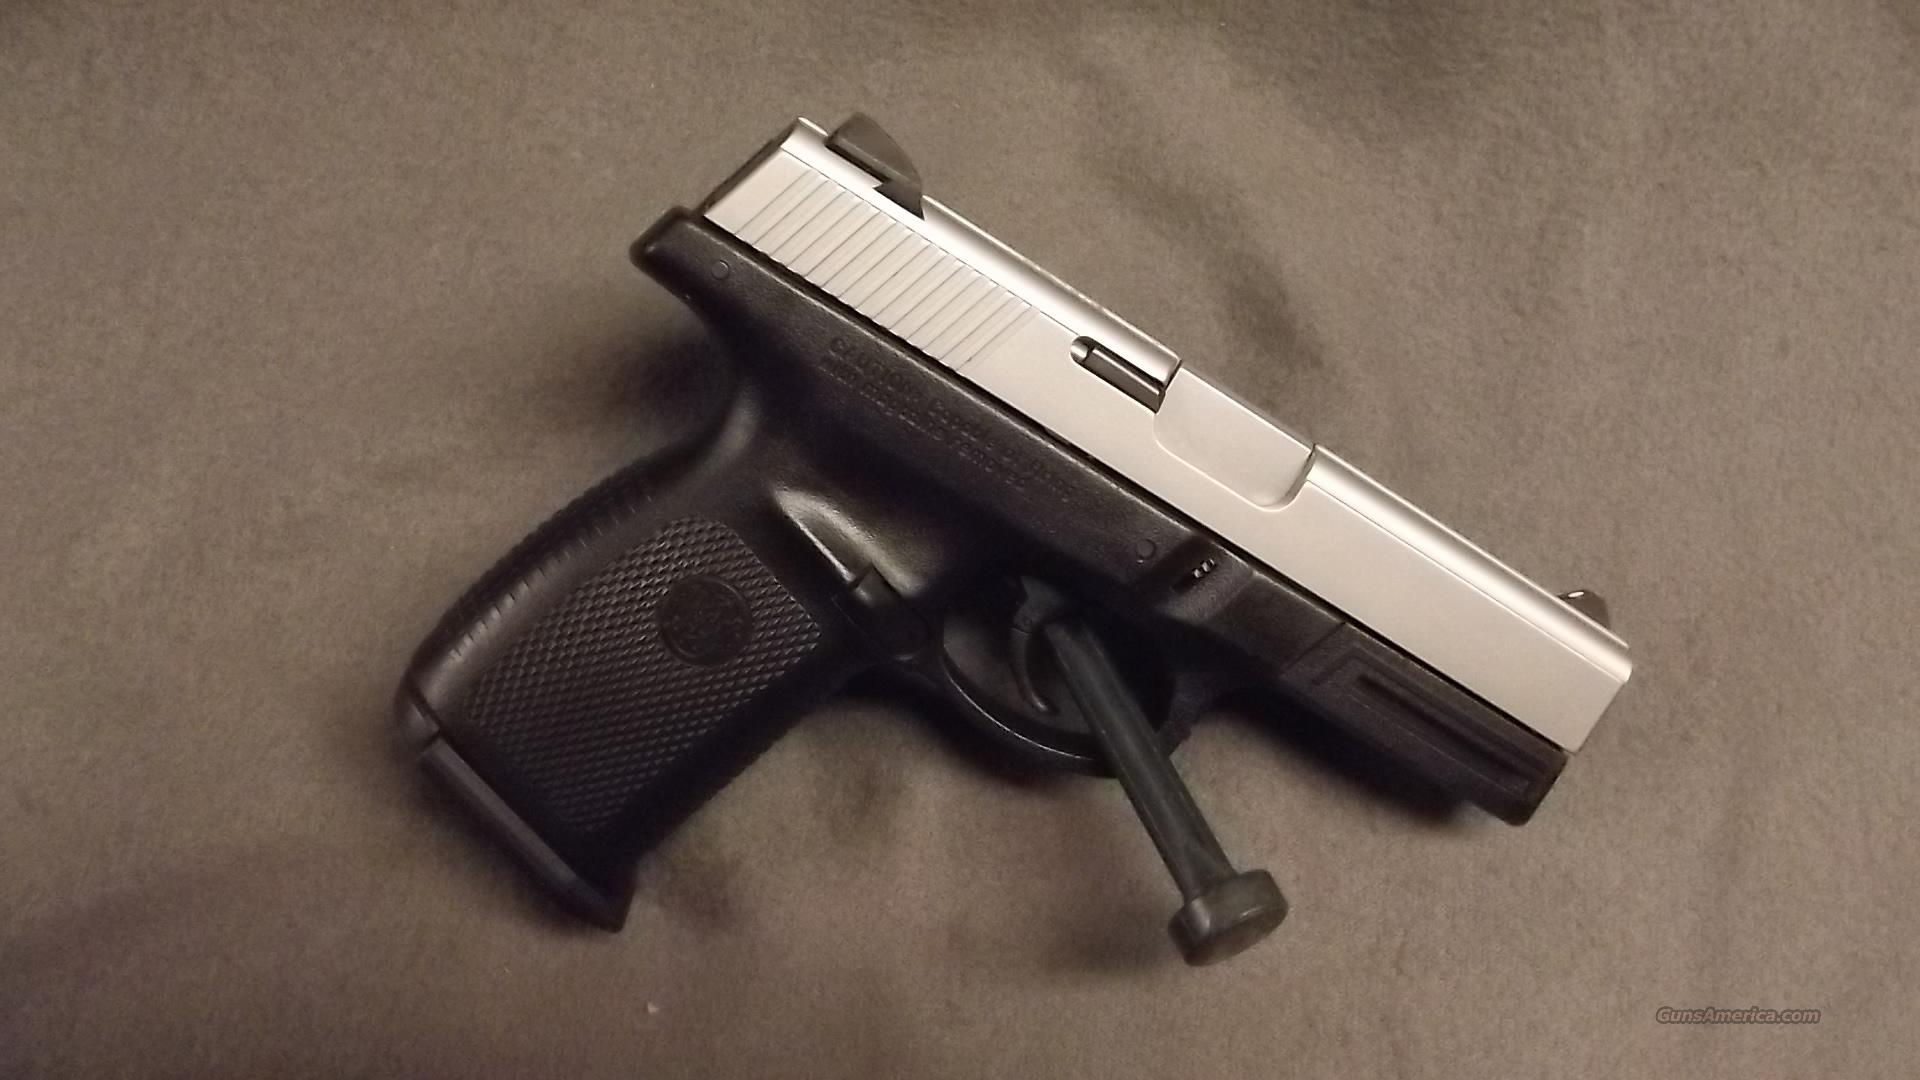 SMITH WESSON    9VE   DUO TONE  Guns > Pistols > Smith & Wesson Pistols - Autos > Polymer Frame